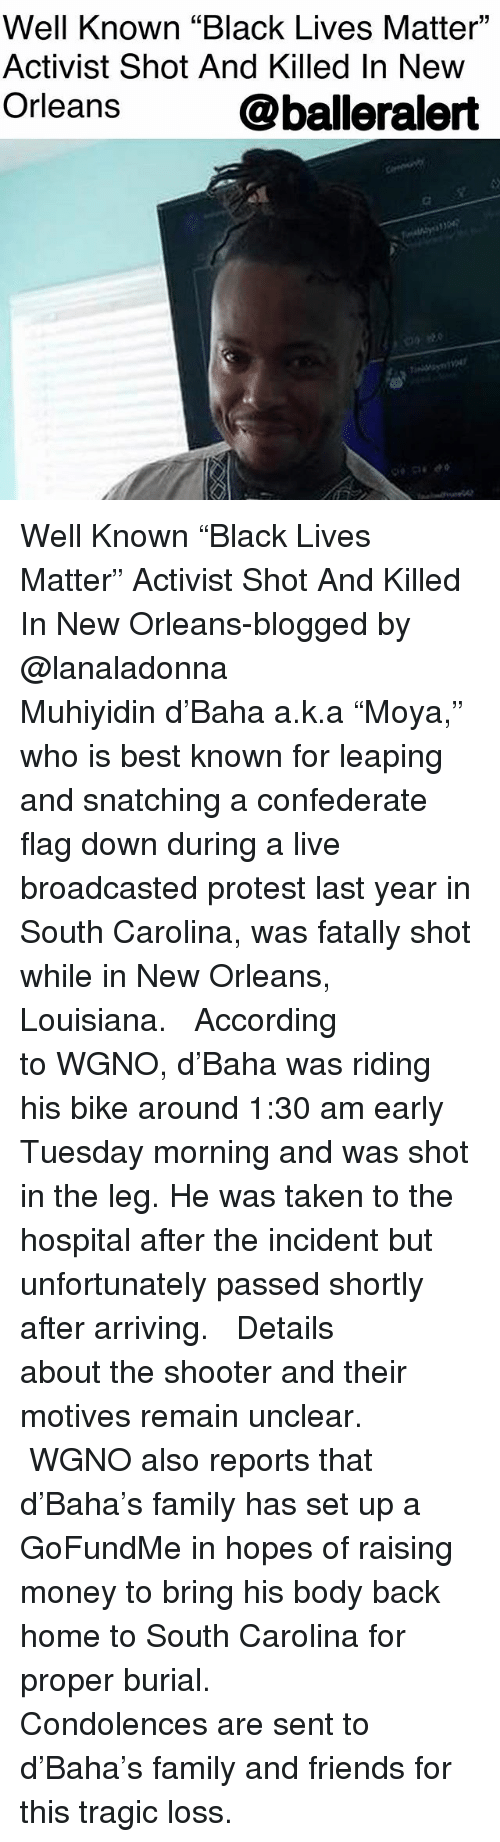 """Black Lives Matter, Confederate Flag, and Family: Well Known """"Black Lives Matter""""  Activist Shot And Killed In New  Orleans  01  @balleralert Well Known """"Black Lives Matter"""" Activist Shot And Killed In New Orleans-blogged by @lanaladonna ⠀⠀⠀⠀⠀⠀⠀ ⠀⠀⠀⠀⠀⠀⠀ Muhiyidin d'Baha a.k.a """"Moya,"""" who is best known for leaping and snatching a confederate flag down during a live broadcasted protest last year in South Carolina, was fatally shot while in New Orleans, Louisiana. ⠀⠀⠀⠀⠀⠀⠀ ⠀⠀⠀⠀⠀⠀⠀ According to WGNO, d'Baha was riding his bike around 1:30 am early Tuesday morning and was shot in the leg. He was taken to the hospital after the incident but unfortunately passed shortly after arriving. ⠀⠀⠀⠀⠀⠀⠀ ⠀⠀⠀⠀⠀⠀⠀ Details about the shooter and their motives remain unclear. ⠀⠀⠀⠀⠀⠀⠀ ⠀⠀⠀⠀⠀⠀⠀ WGNO also reports that d'Baha's family has set up a GoFundMe in hopes of raising money to bring his body back home to South Carolina for proper burial. ⠀⠀⠀⠀⠀⠀⠀ ⠀⠀⠀⠀⠀⠀⠀ Condolences are sent to d'Baha's family and friends for this tragic loss."""